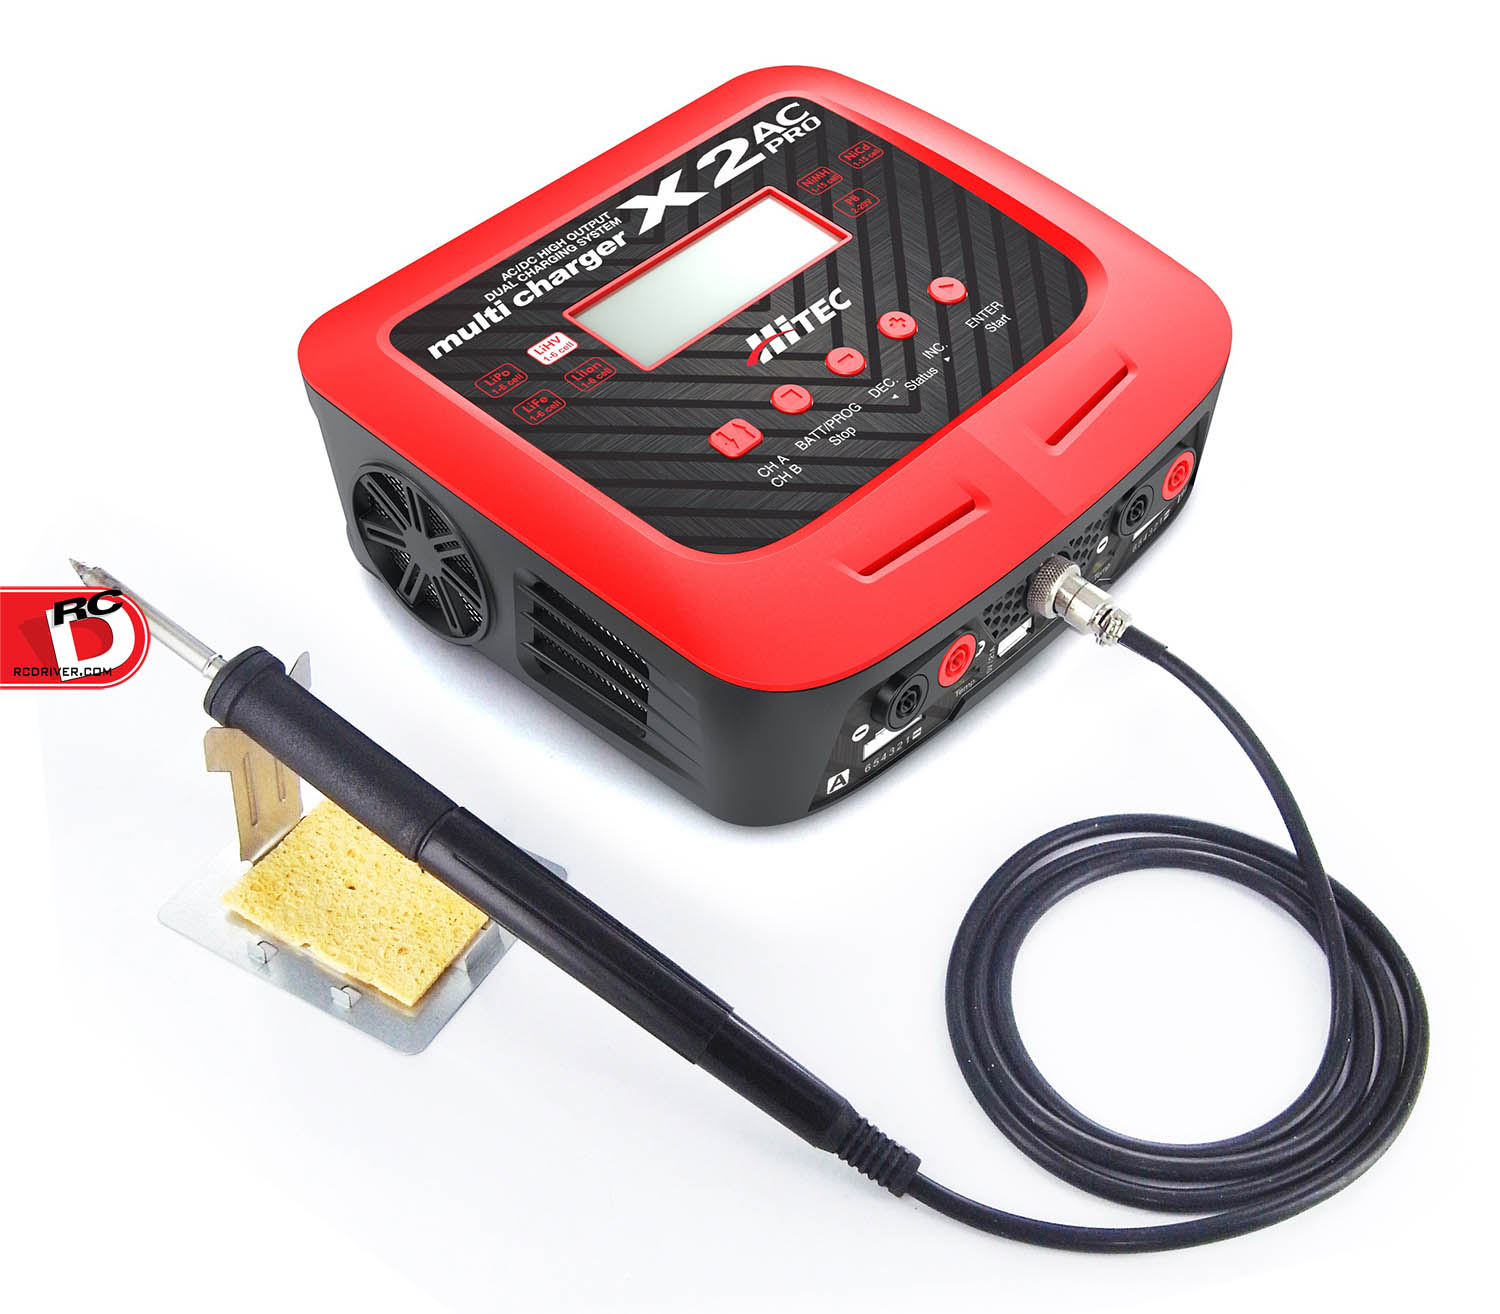 Hitec - X2 AC Pro - ACDC Multi Charger and Soldering Iron (2) copy